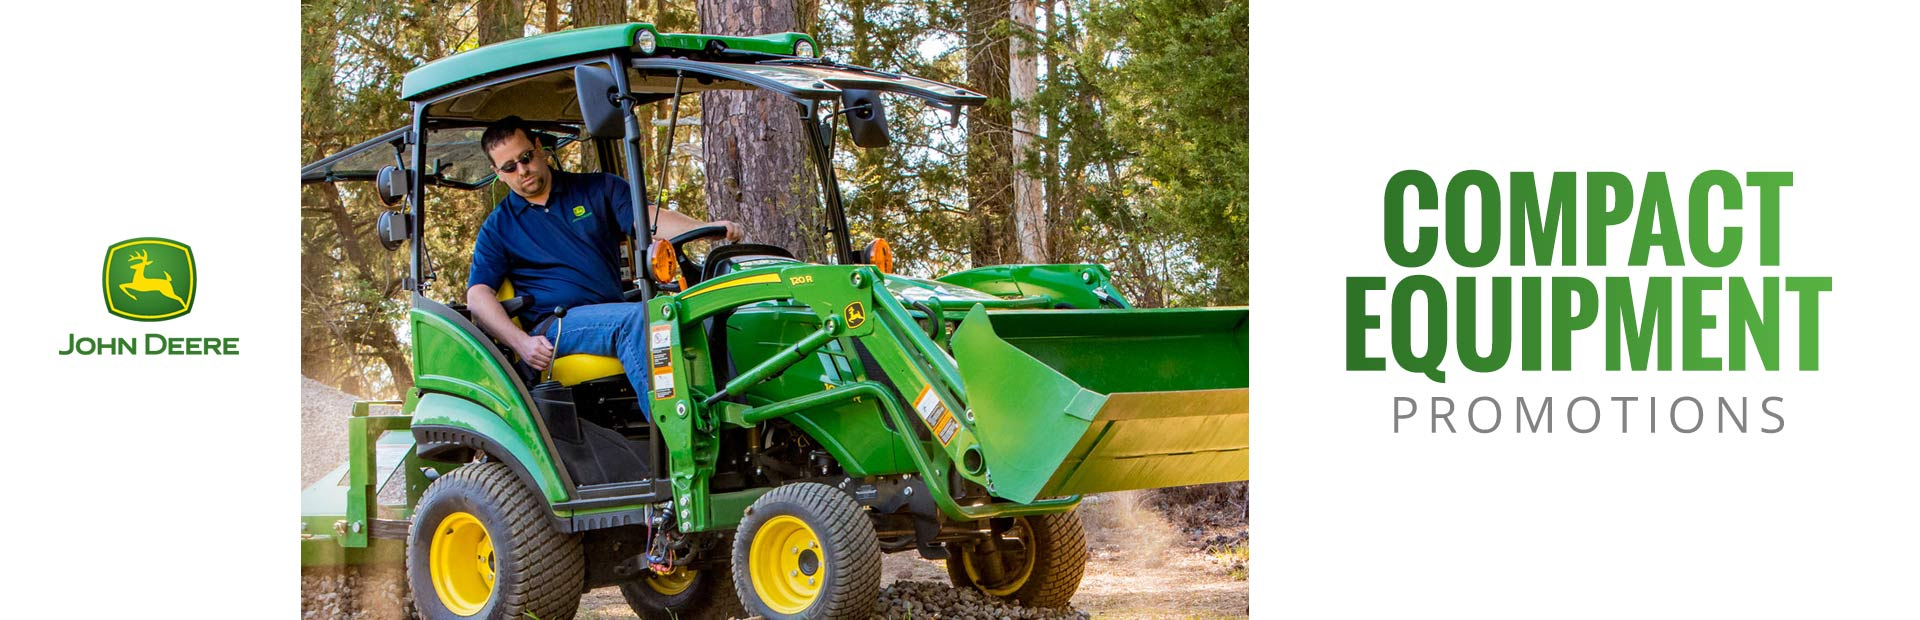 John Deere: Compact Equipment